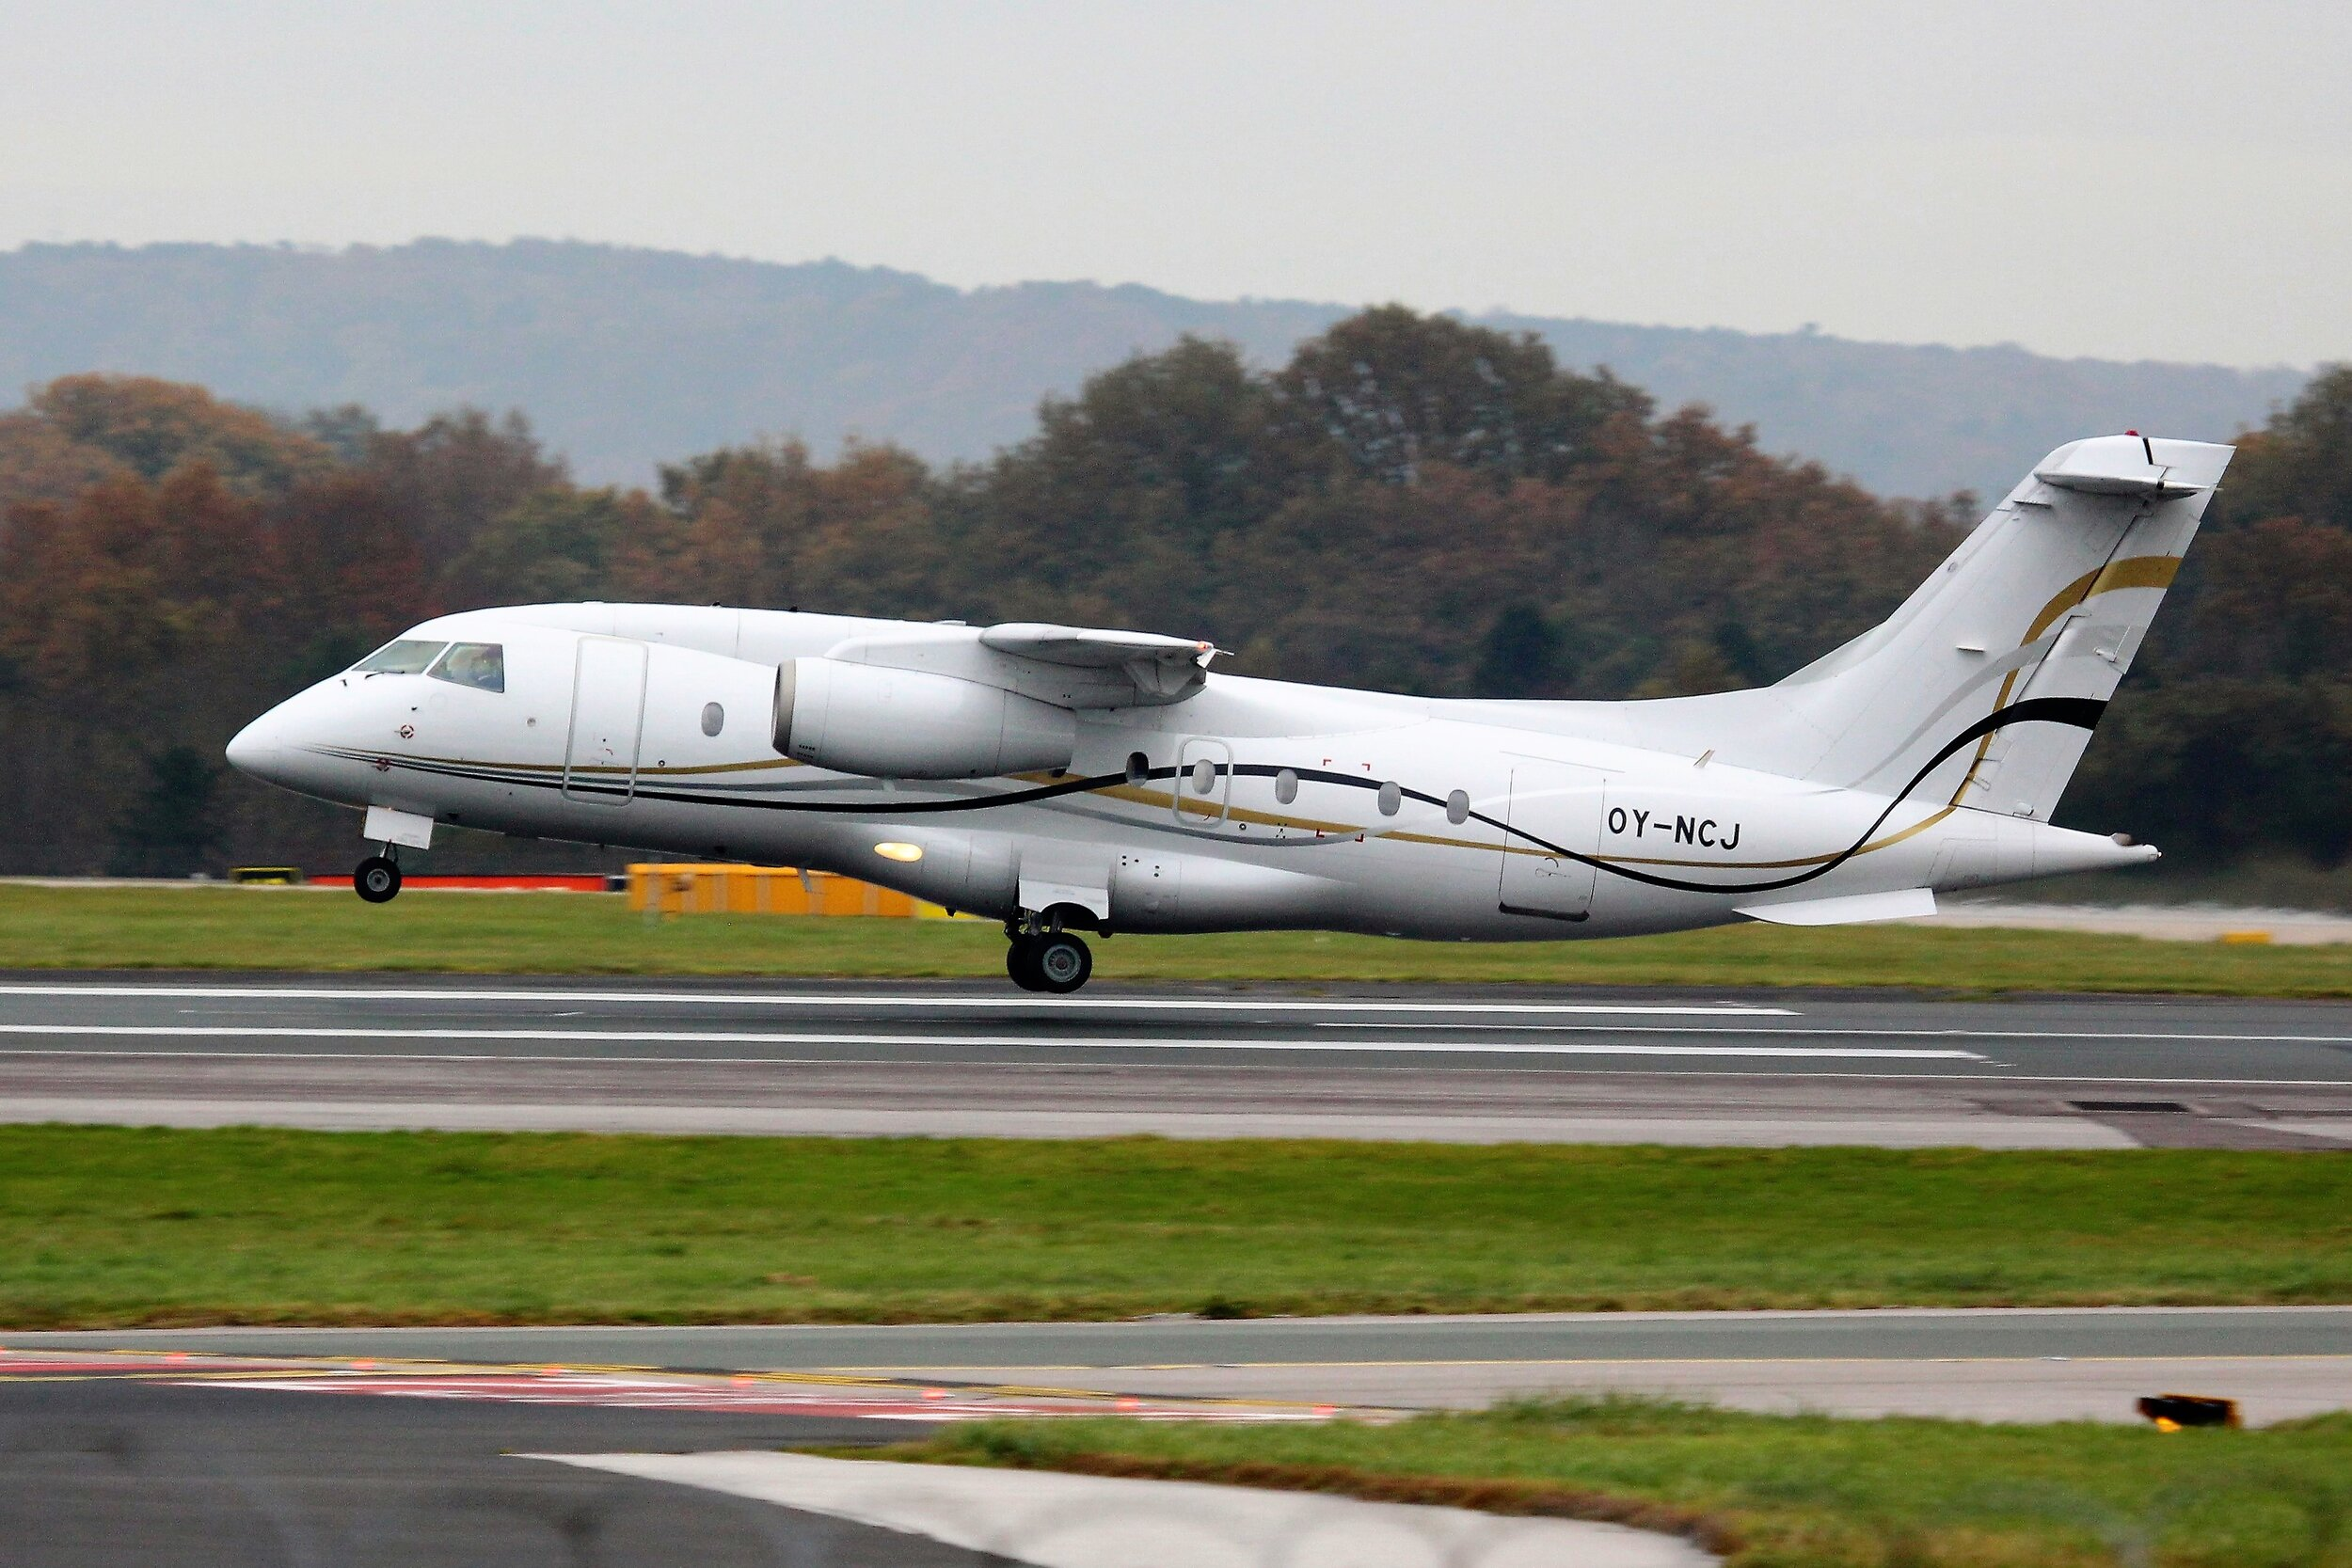 Do 228 jet OY-NCJ was photographed departing on Runway 05 Left (from the RVP) by Greg Mape on 6th November.